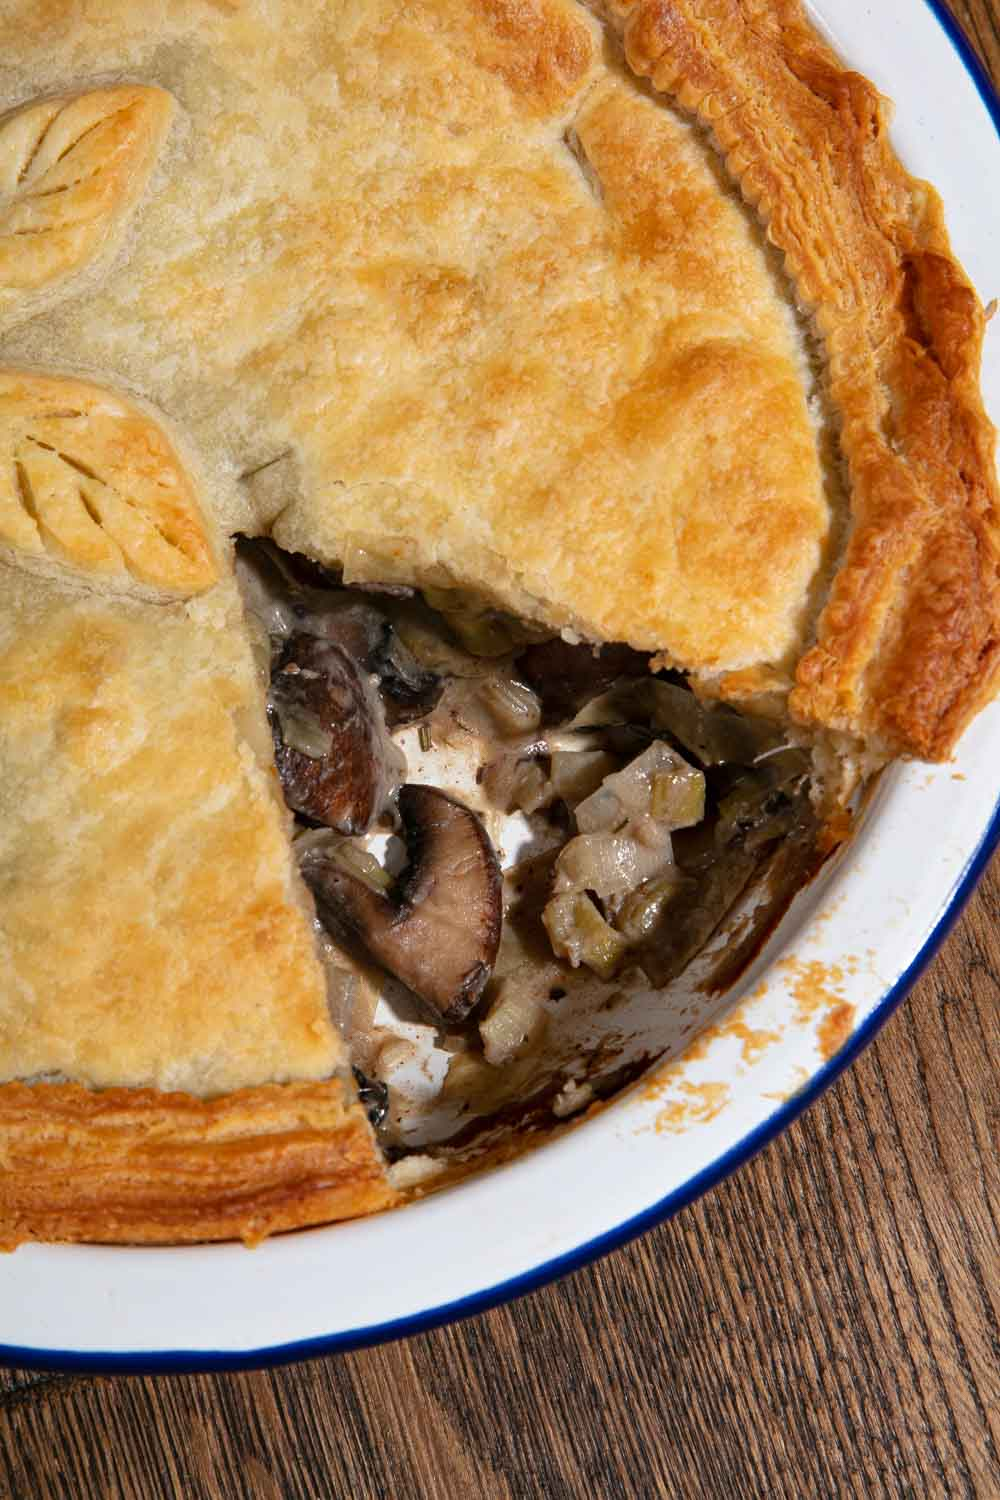 Leek and mushroom pie with a slice removed to show the filling.